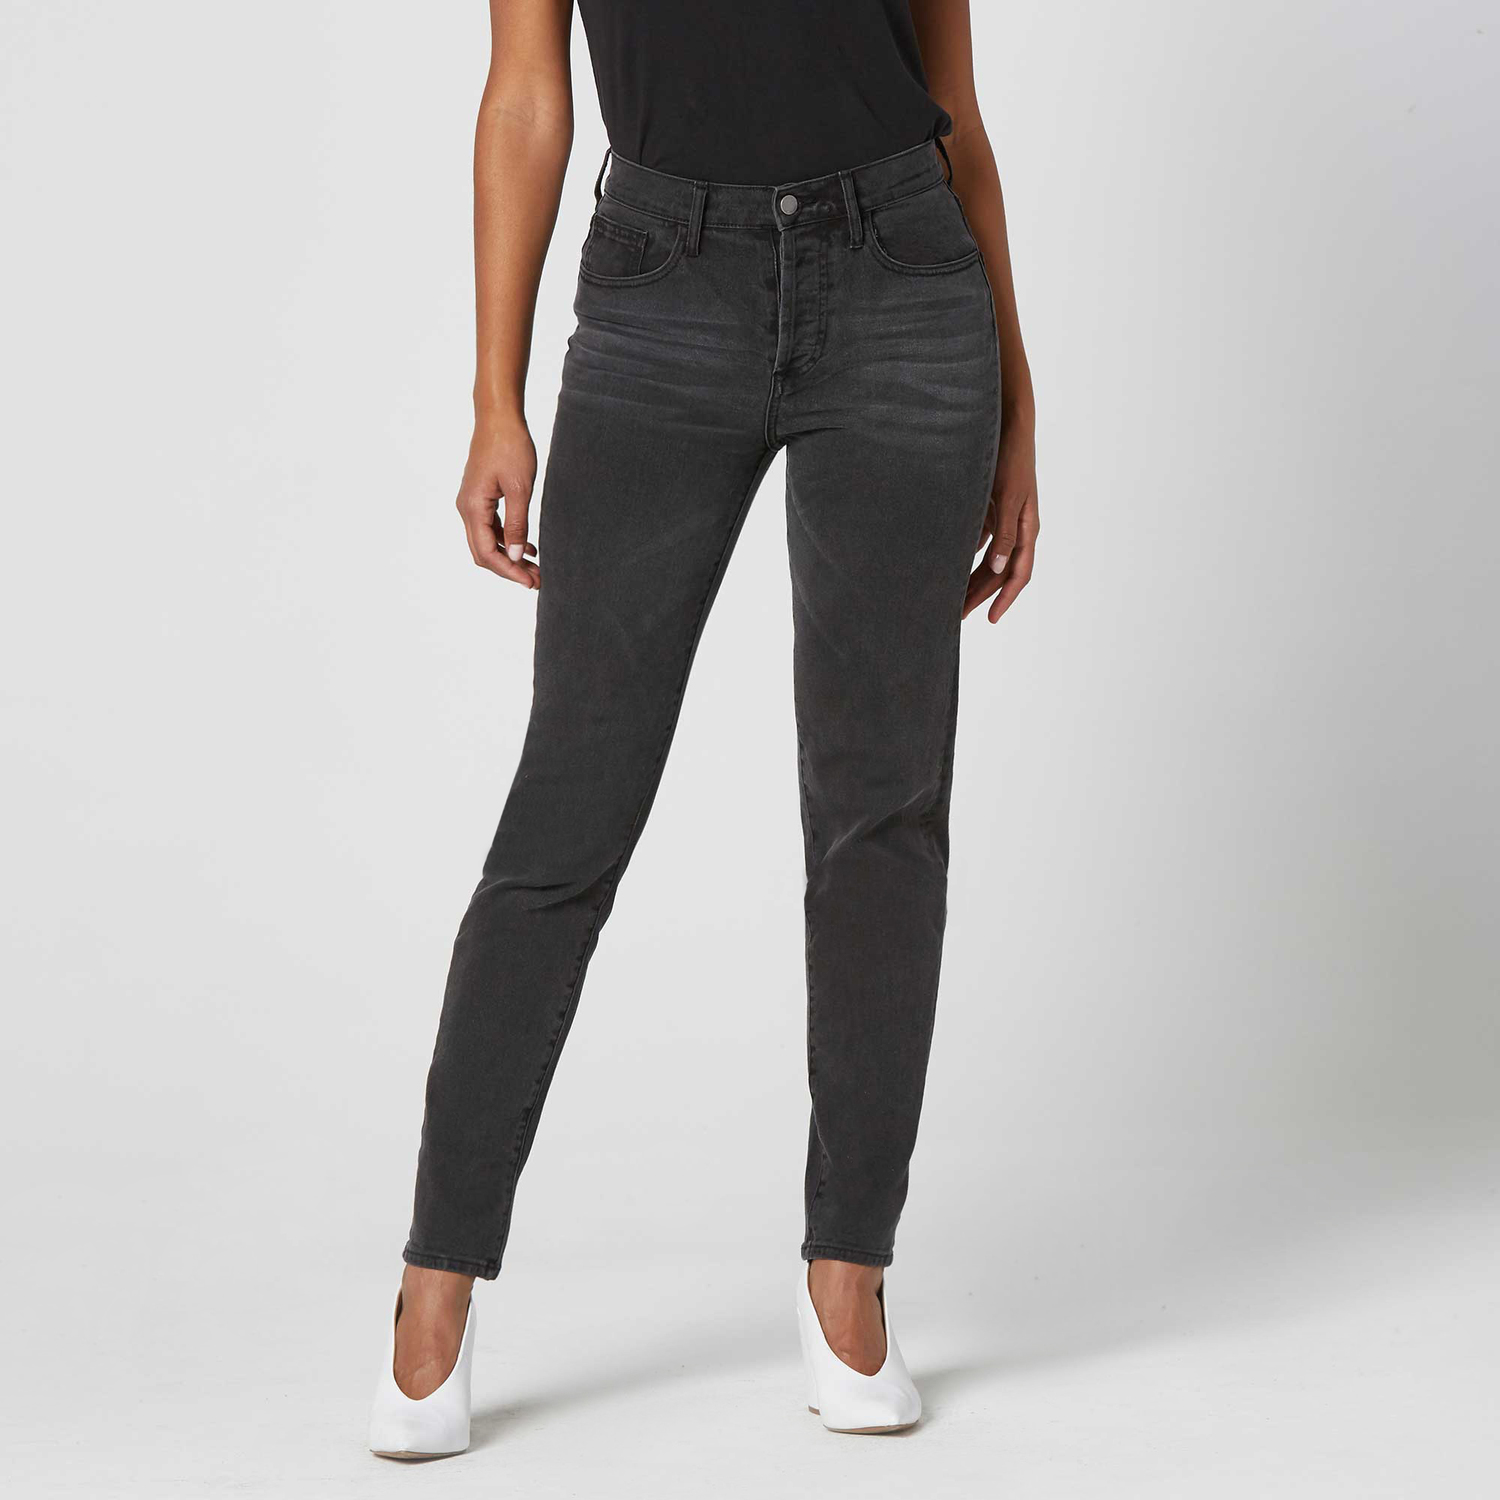 1131d850cb69 Womens High Rise Mom Jeans In Faded Black  95